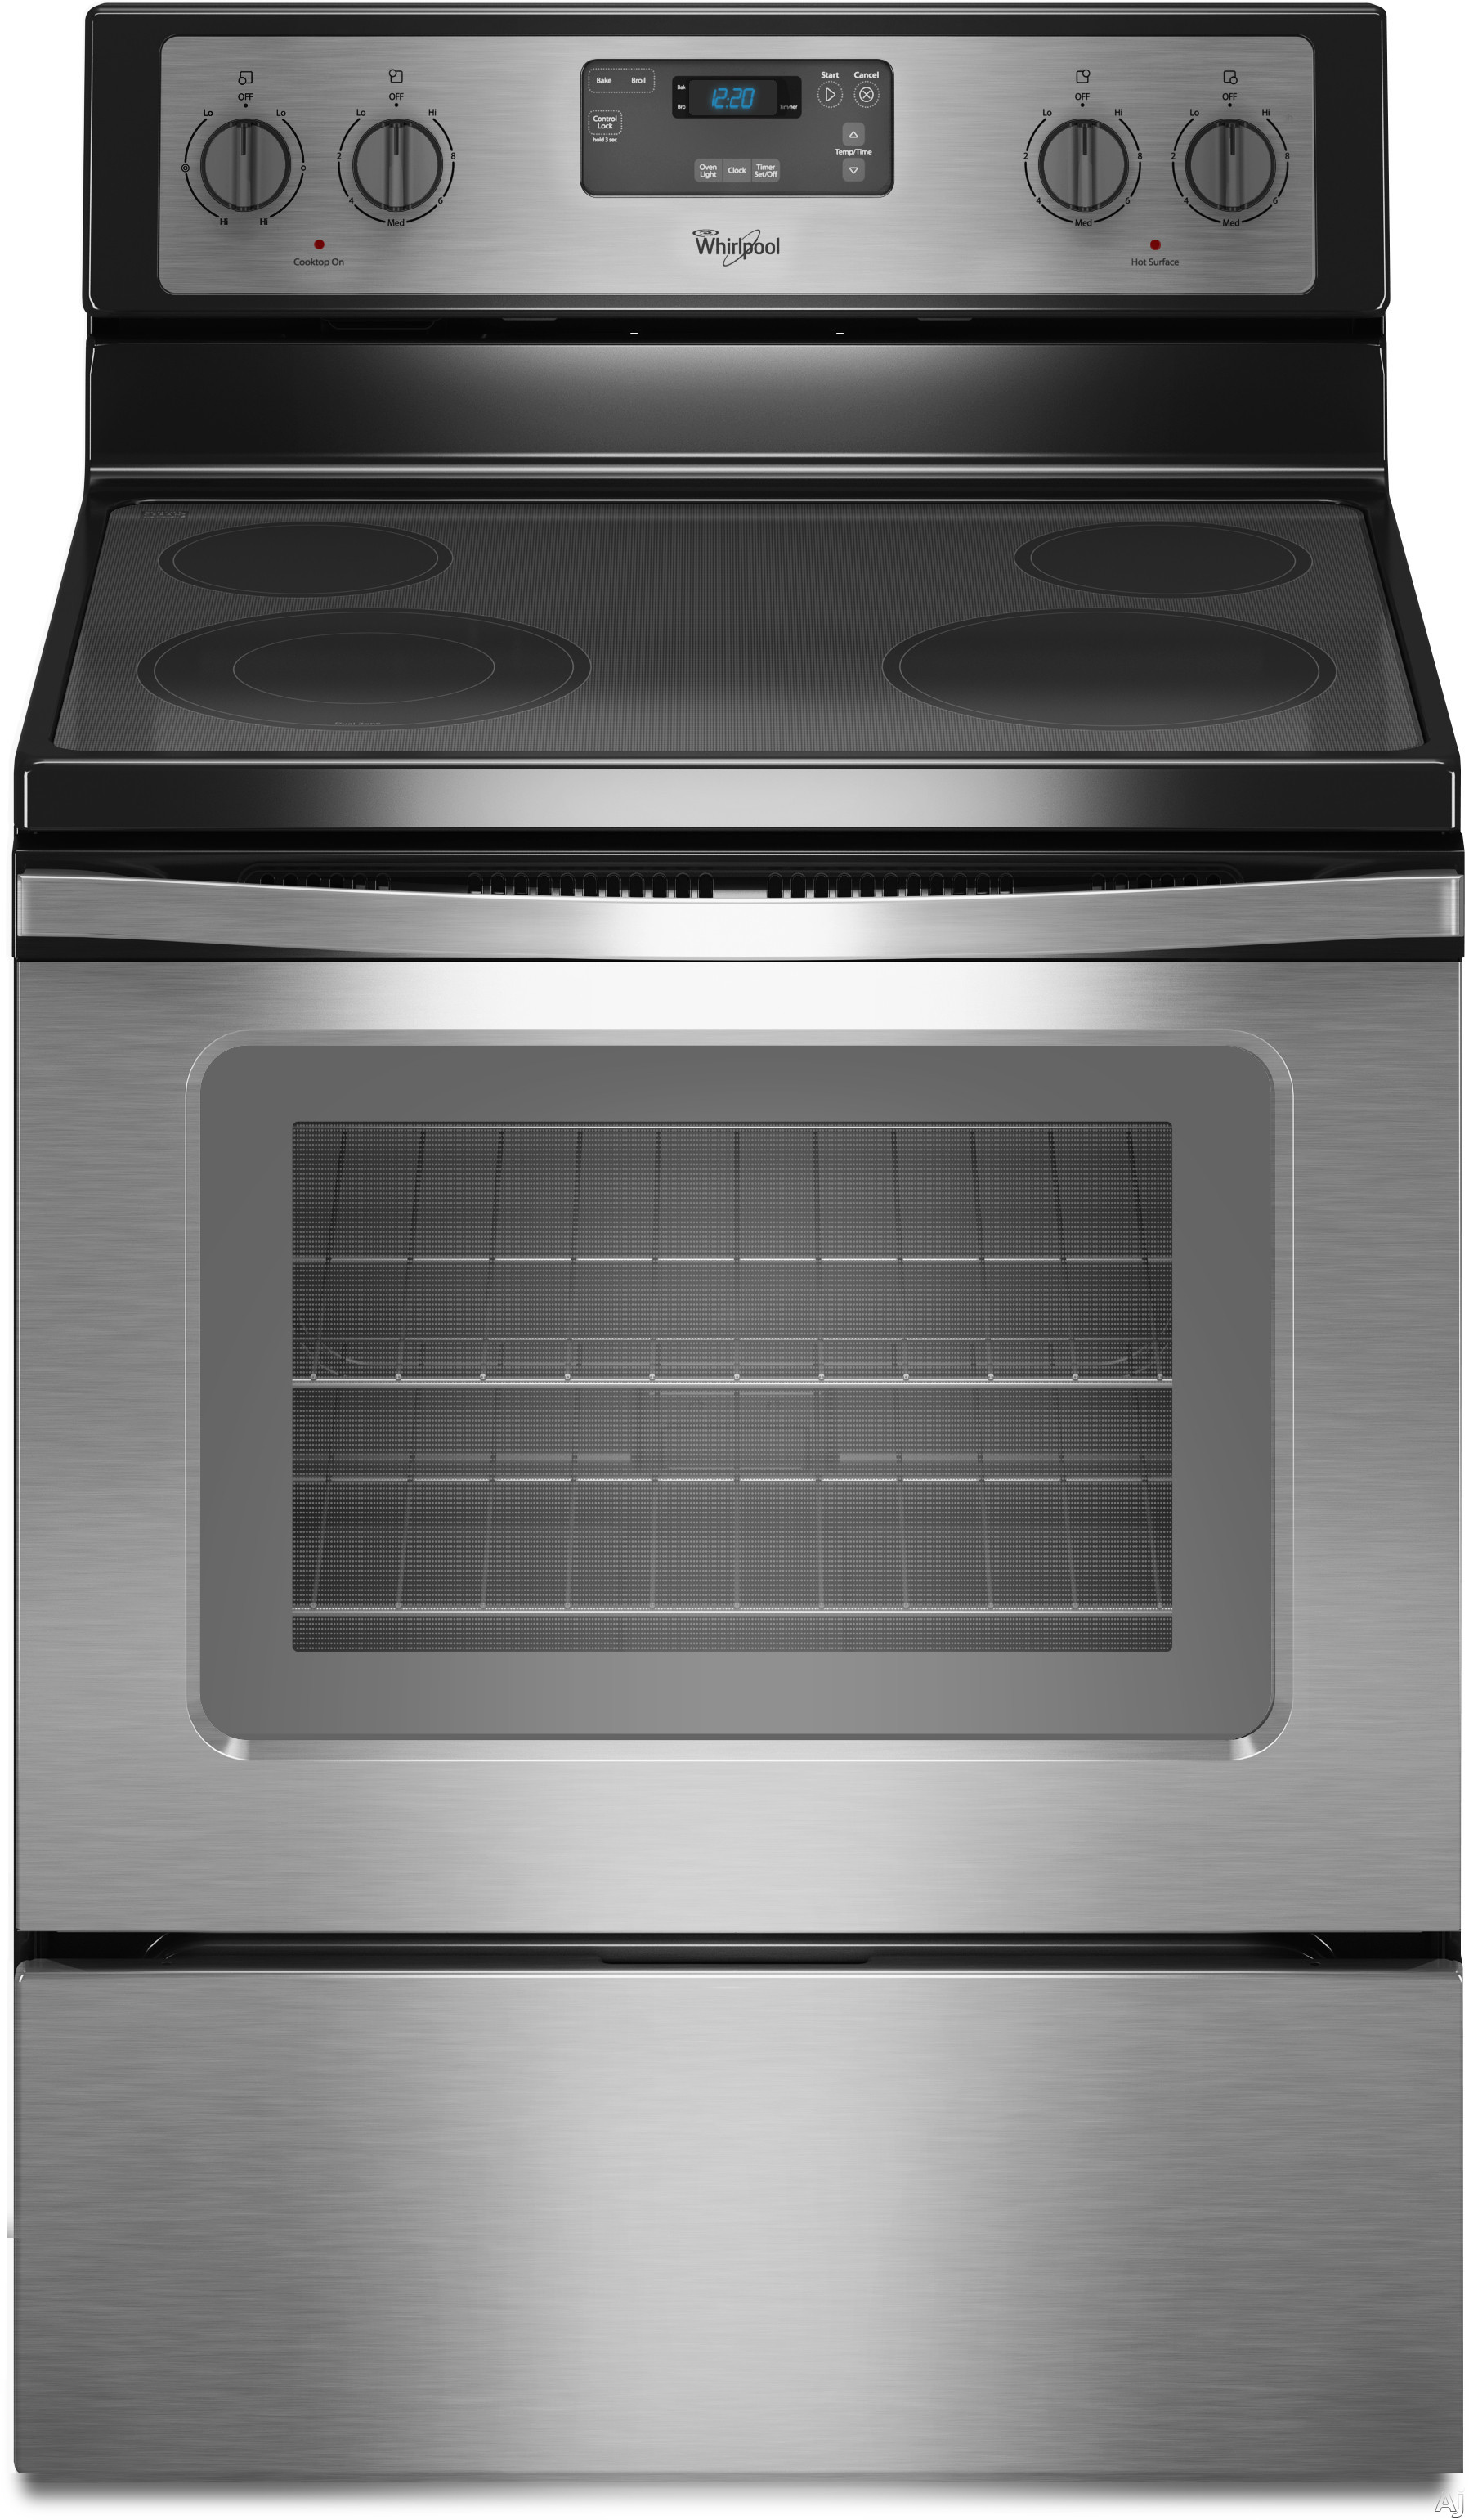 Whirlpool WFE320M0E 30 Inch Freestanding Electric Range with 4 Radiant Elements, 3,000 Watts, 4.8 cu. ft. Traditional Oven, Easy Wipe Ceramic Glass Cooktop and FlexHeat Element WFE320M0E